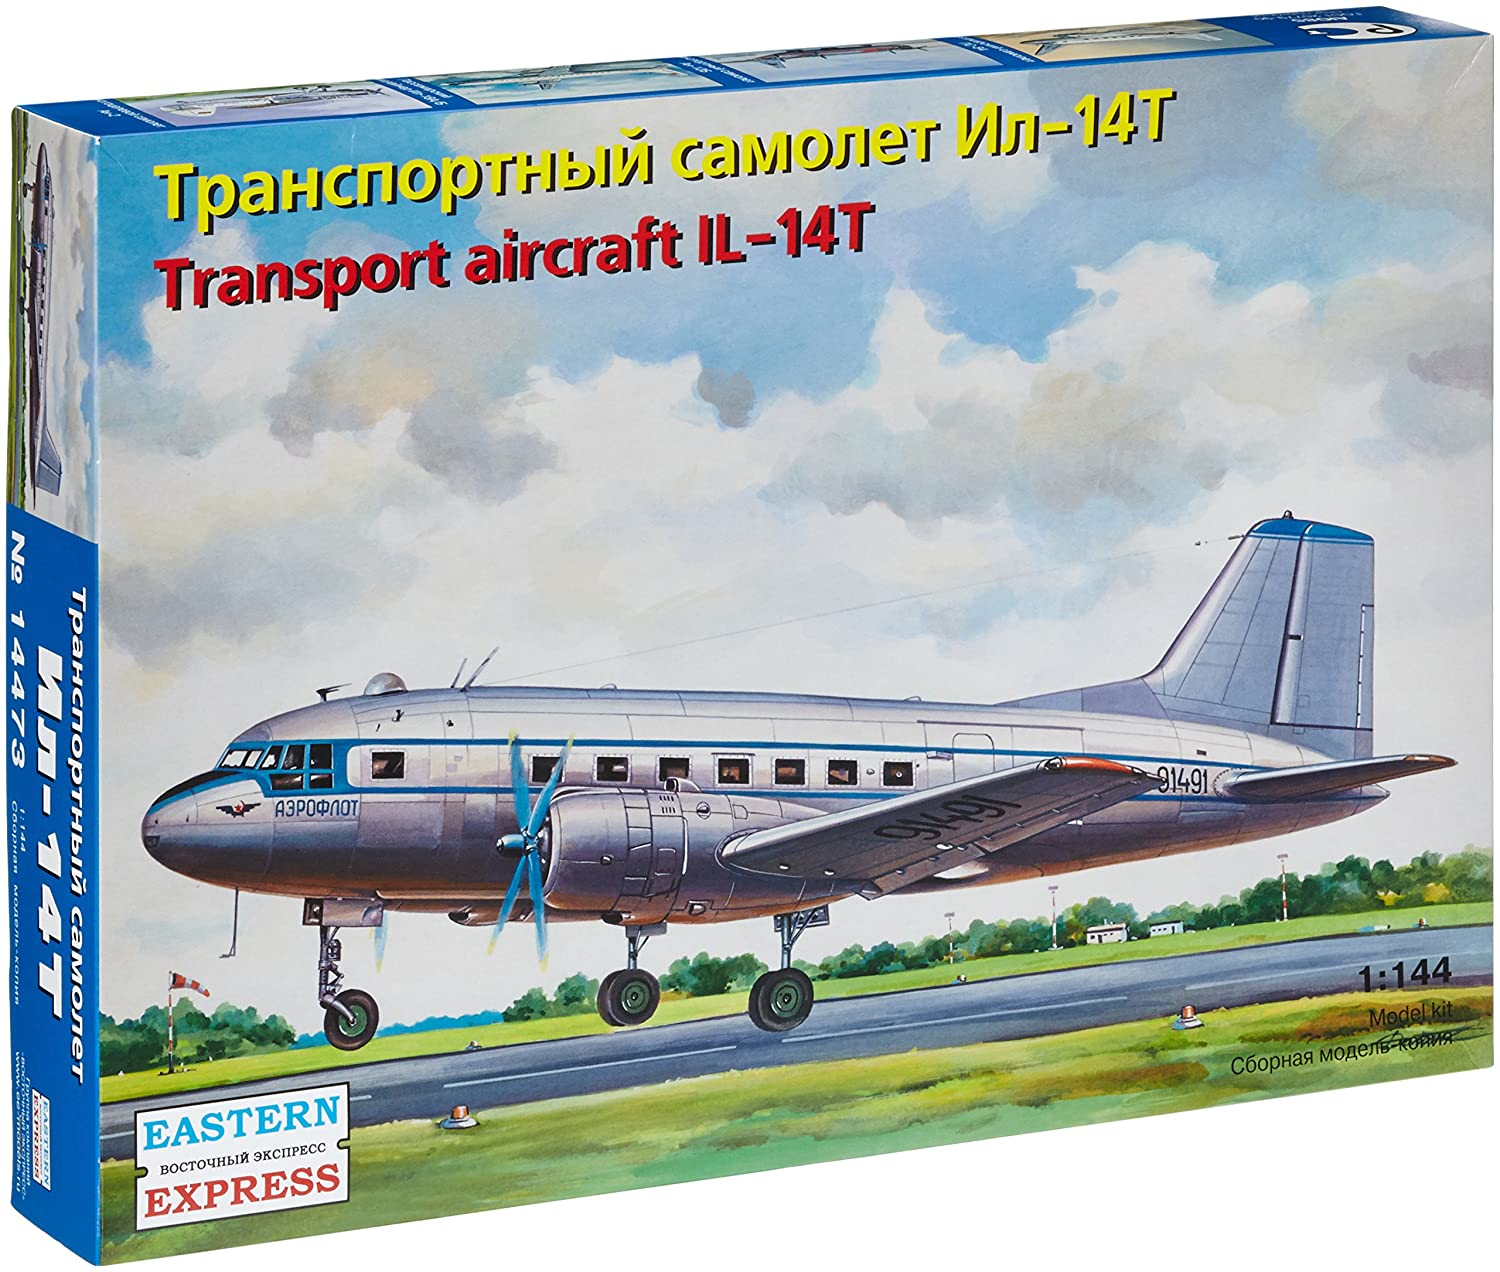 ARK Models EE14473 1 144 Scale Ilyushin IL14T Russian Transport Aircraft Aeroflot Malev Hungarian Airlines the Soviet Air Forces Plastic Model